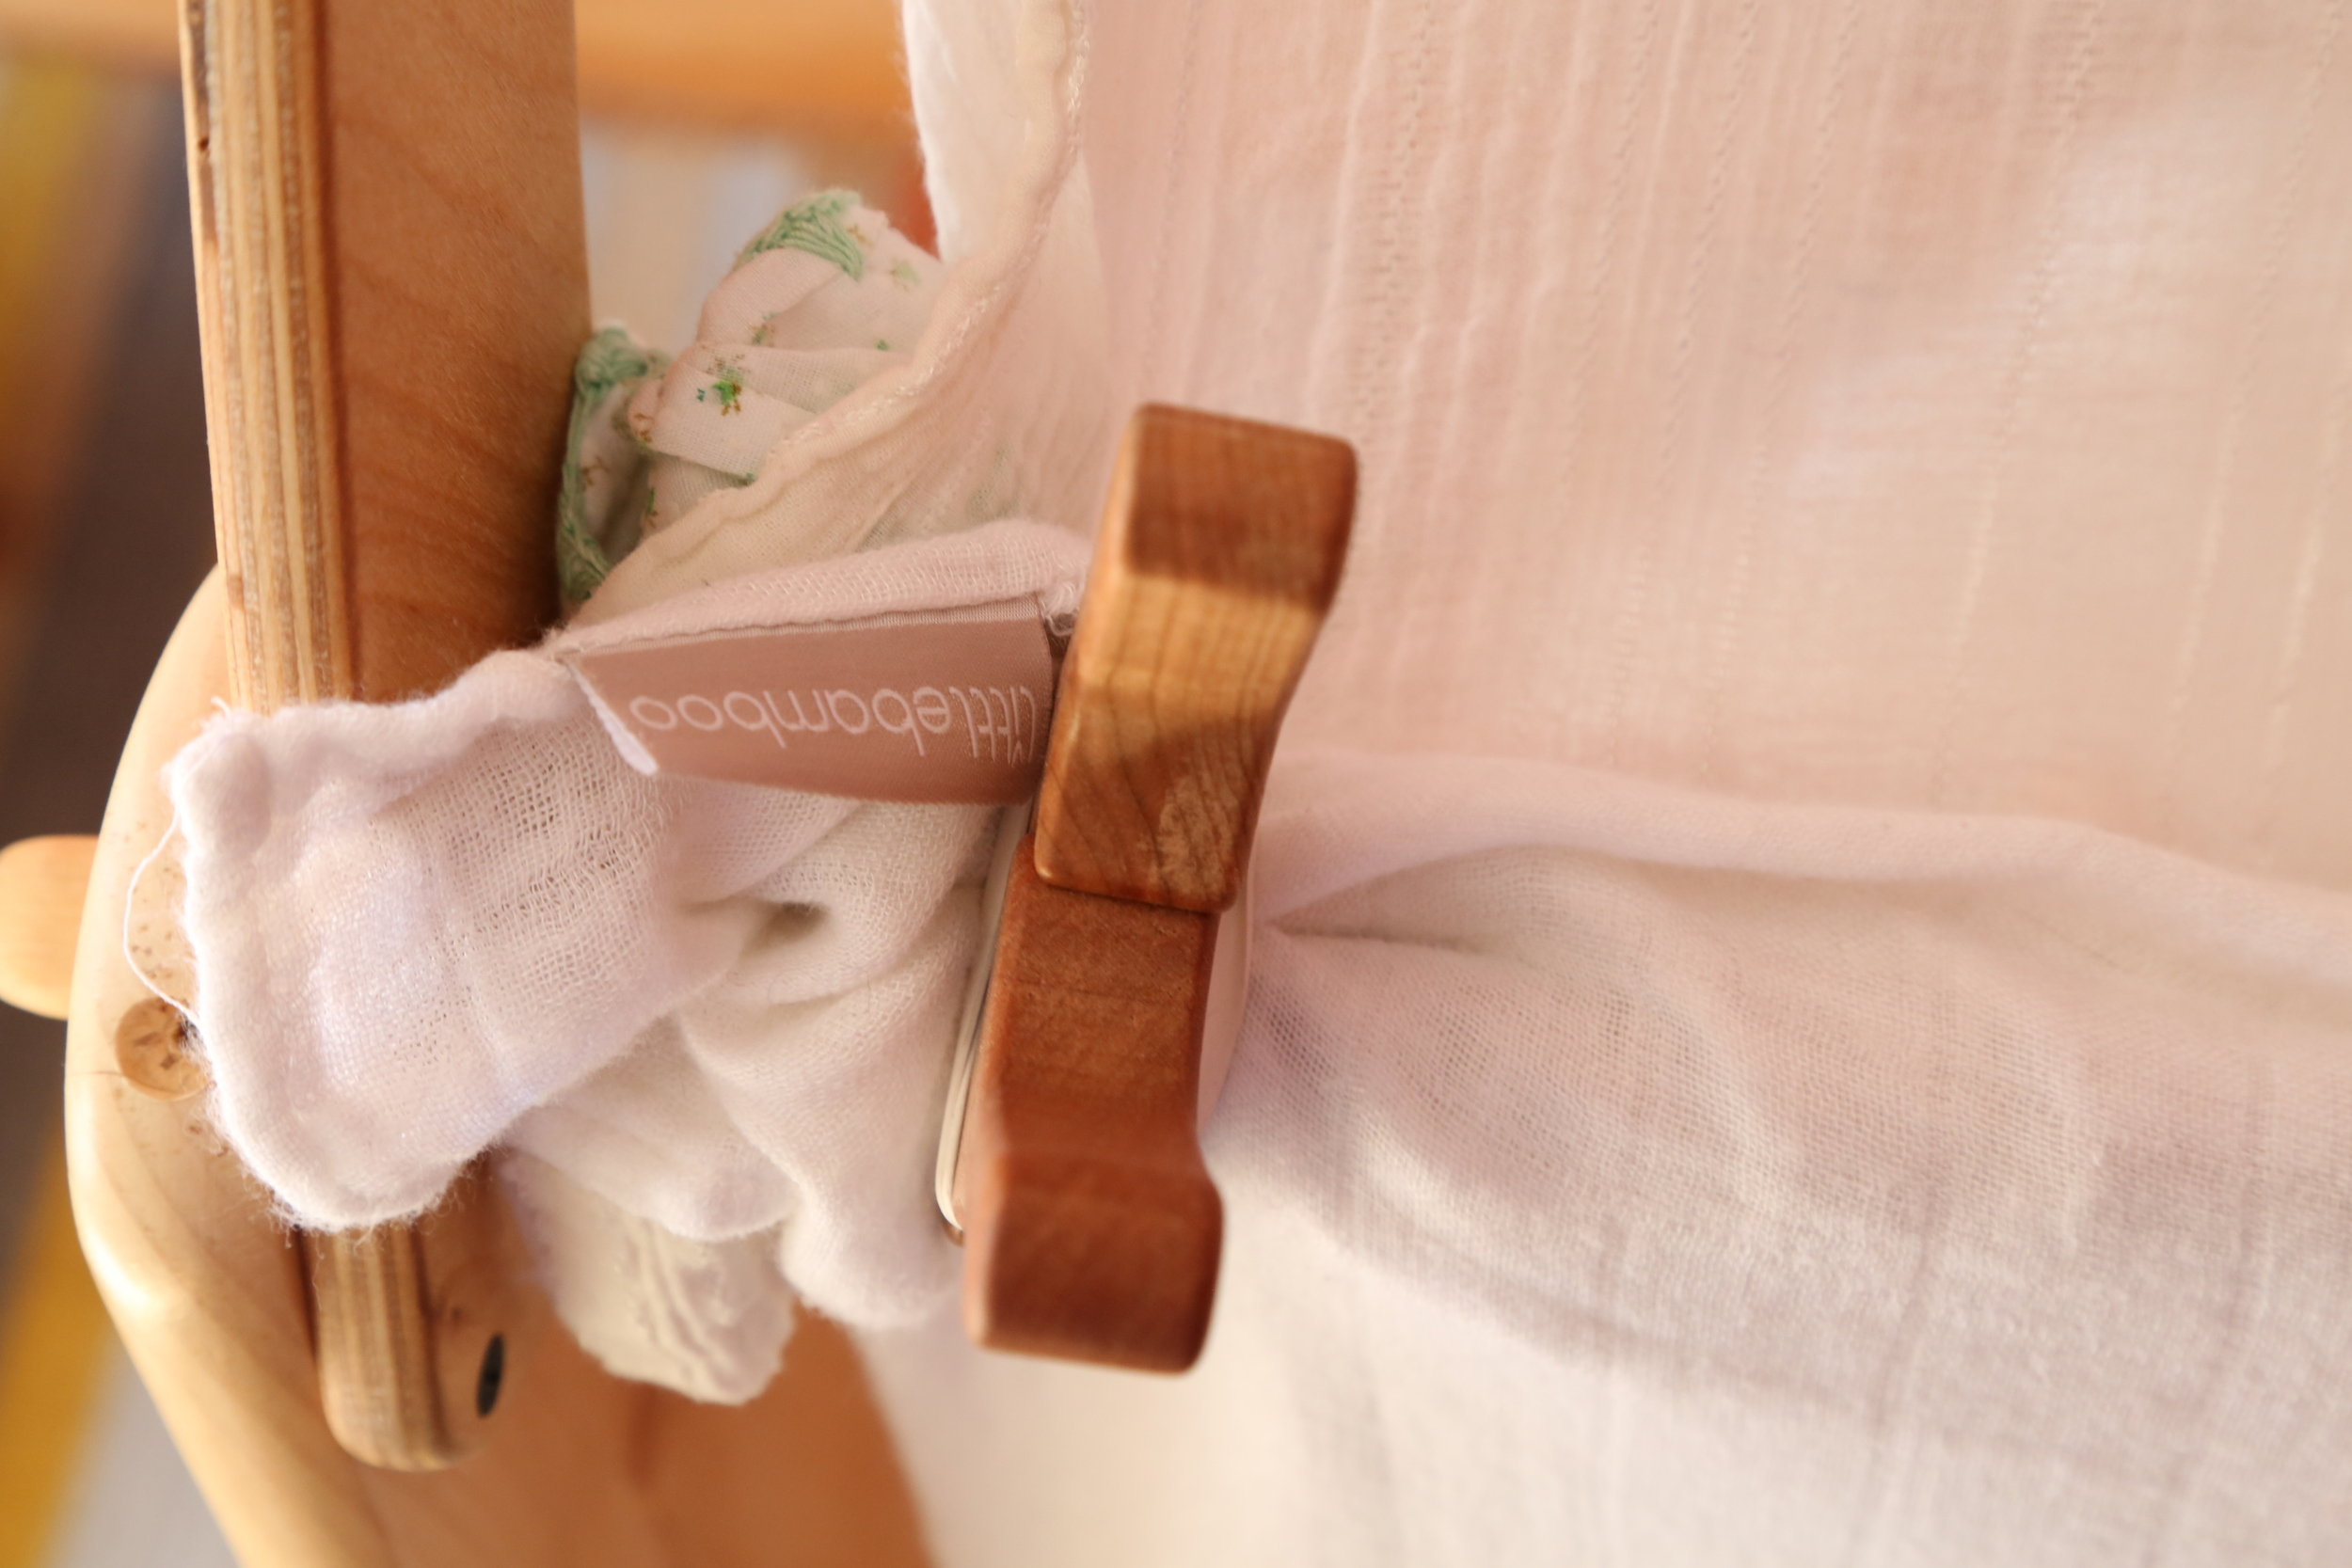 Giant, easy to open clothespins clip around dowels so they can build with cloth.